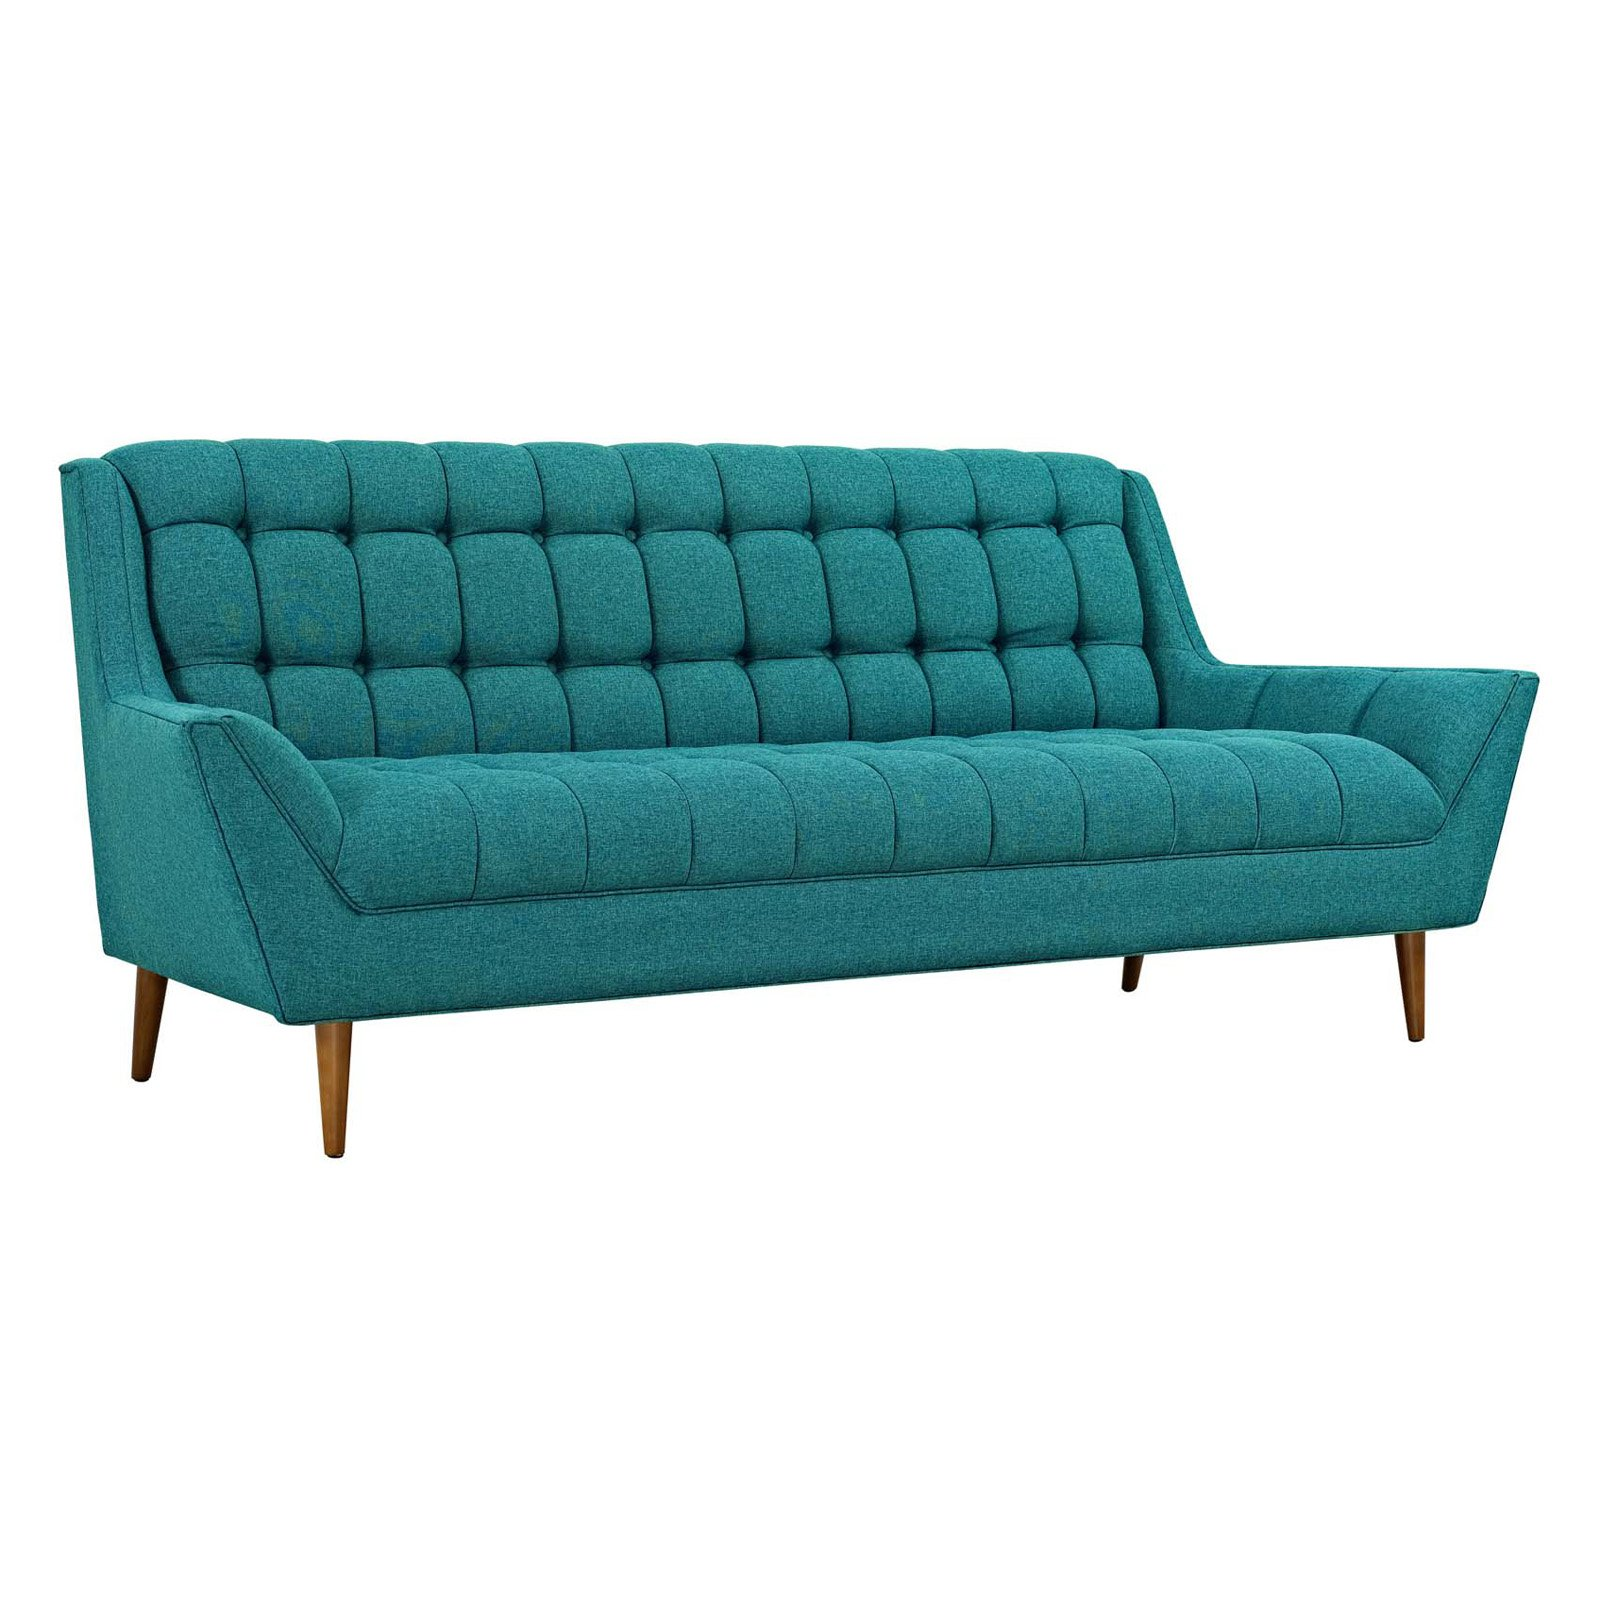 Modway Response Upholstered Fabric Sofa, Multiple Colors